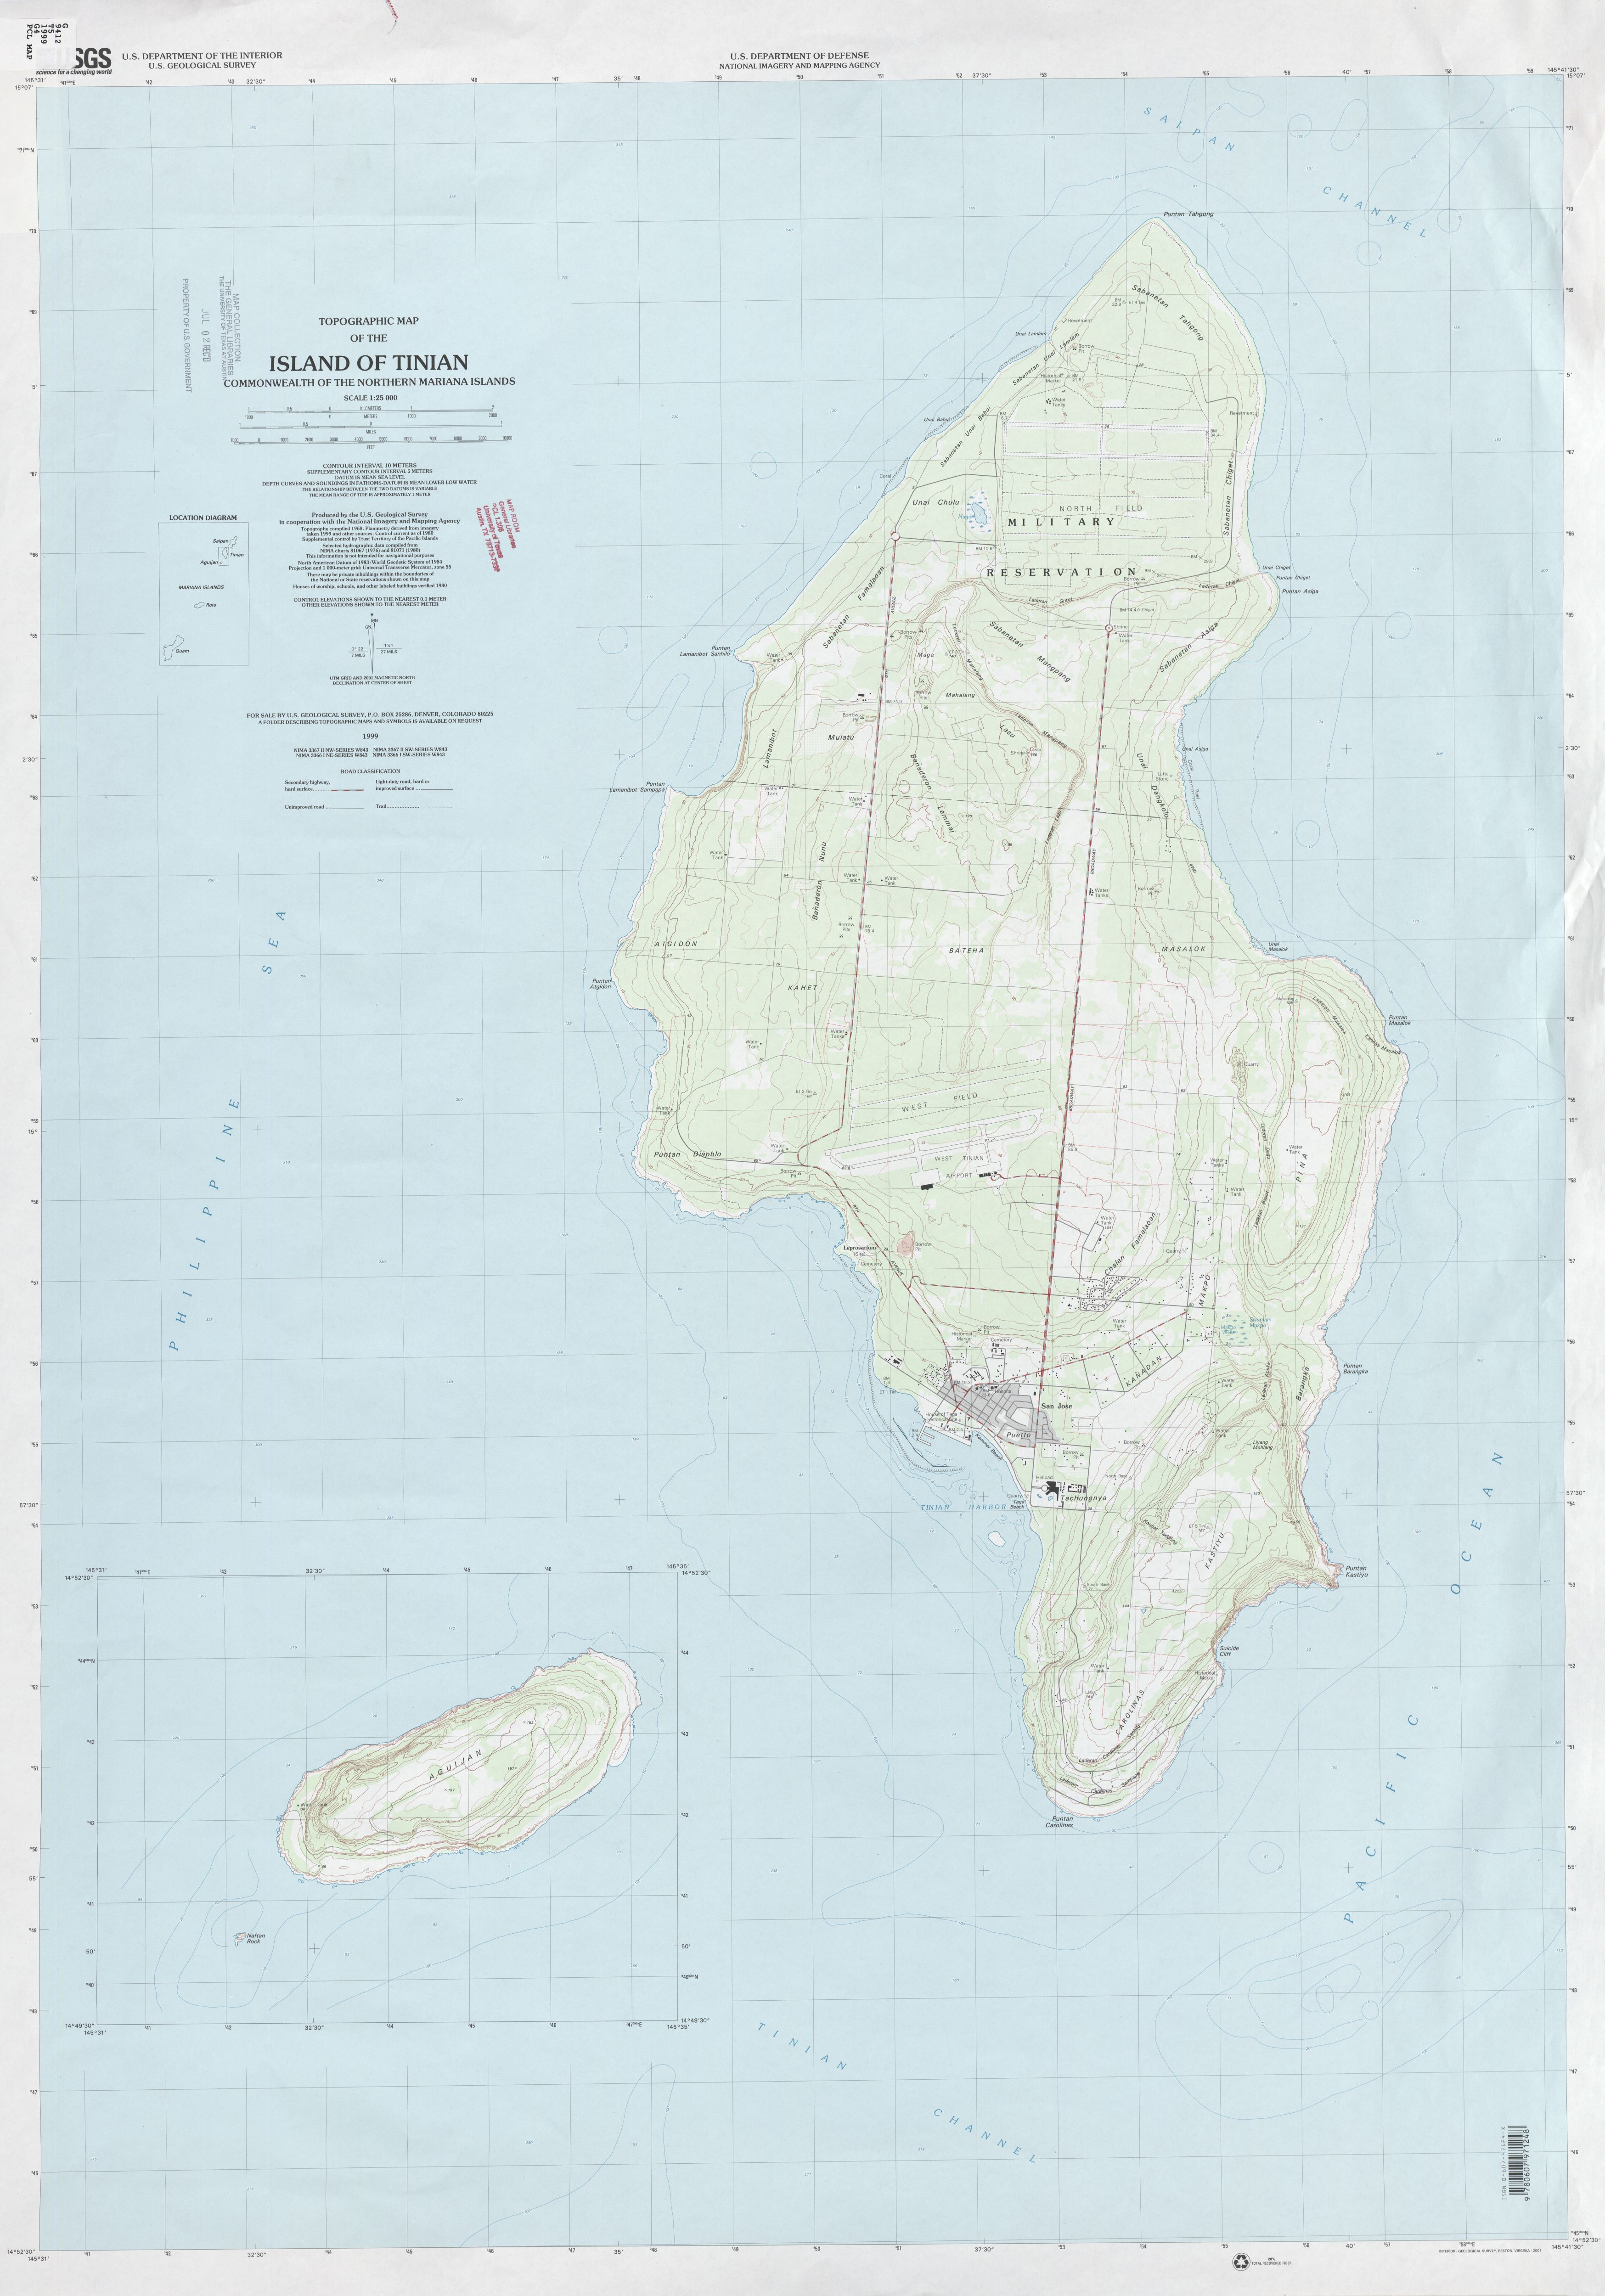 Pacific Islands Topographic Maps - Perry-Castañeda Map ...